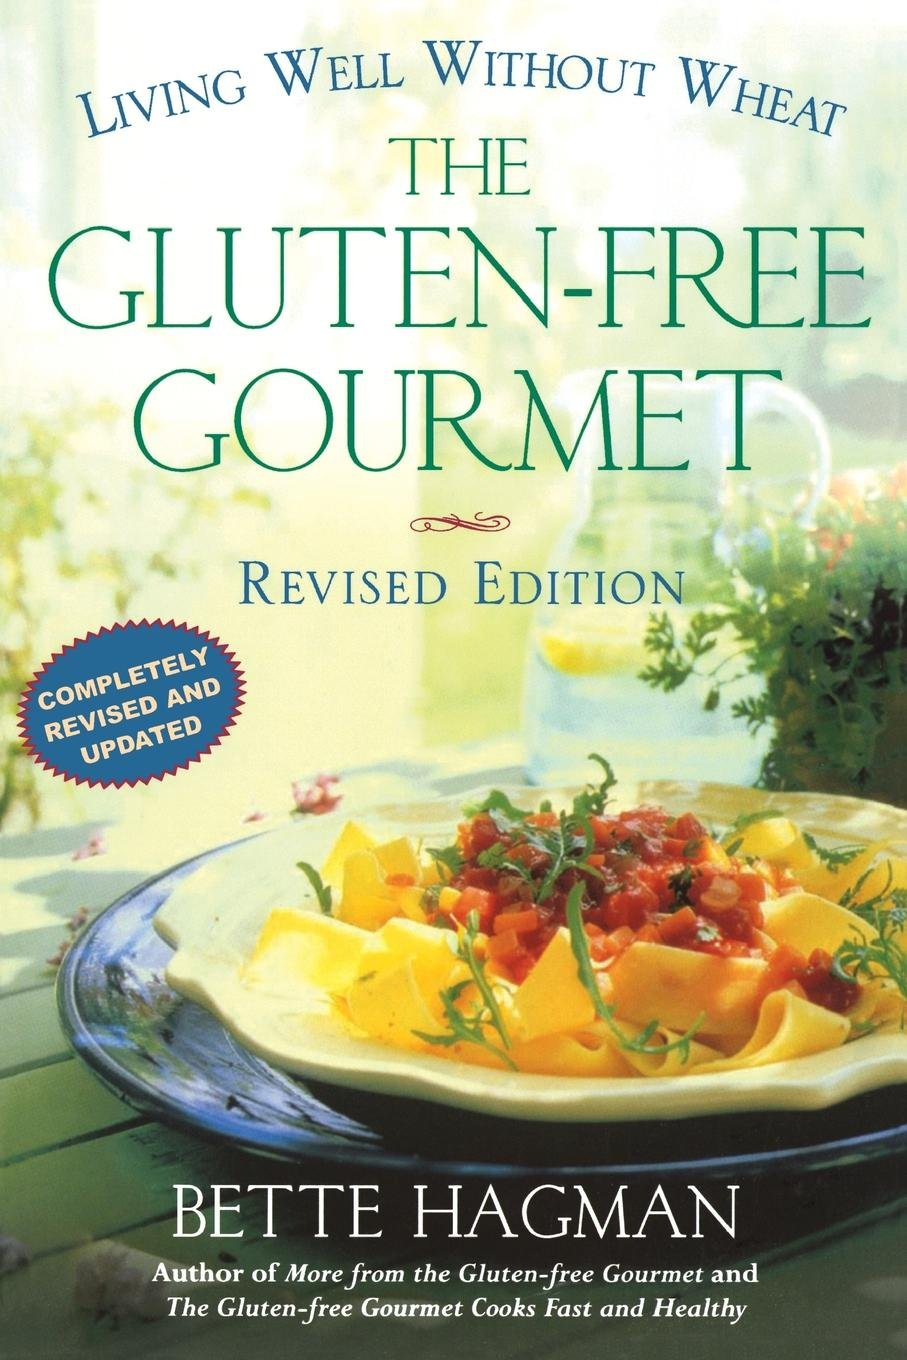 The Gluten-Free Gourmet: Living Well without Wheat, Revised Edition pdf